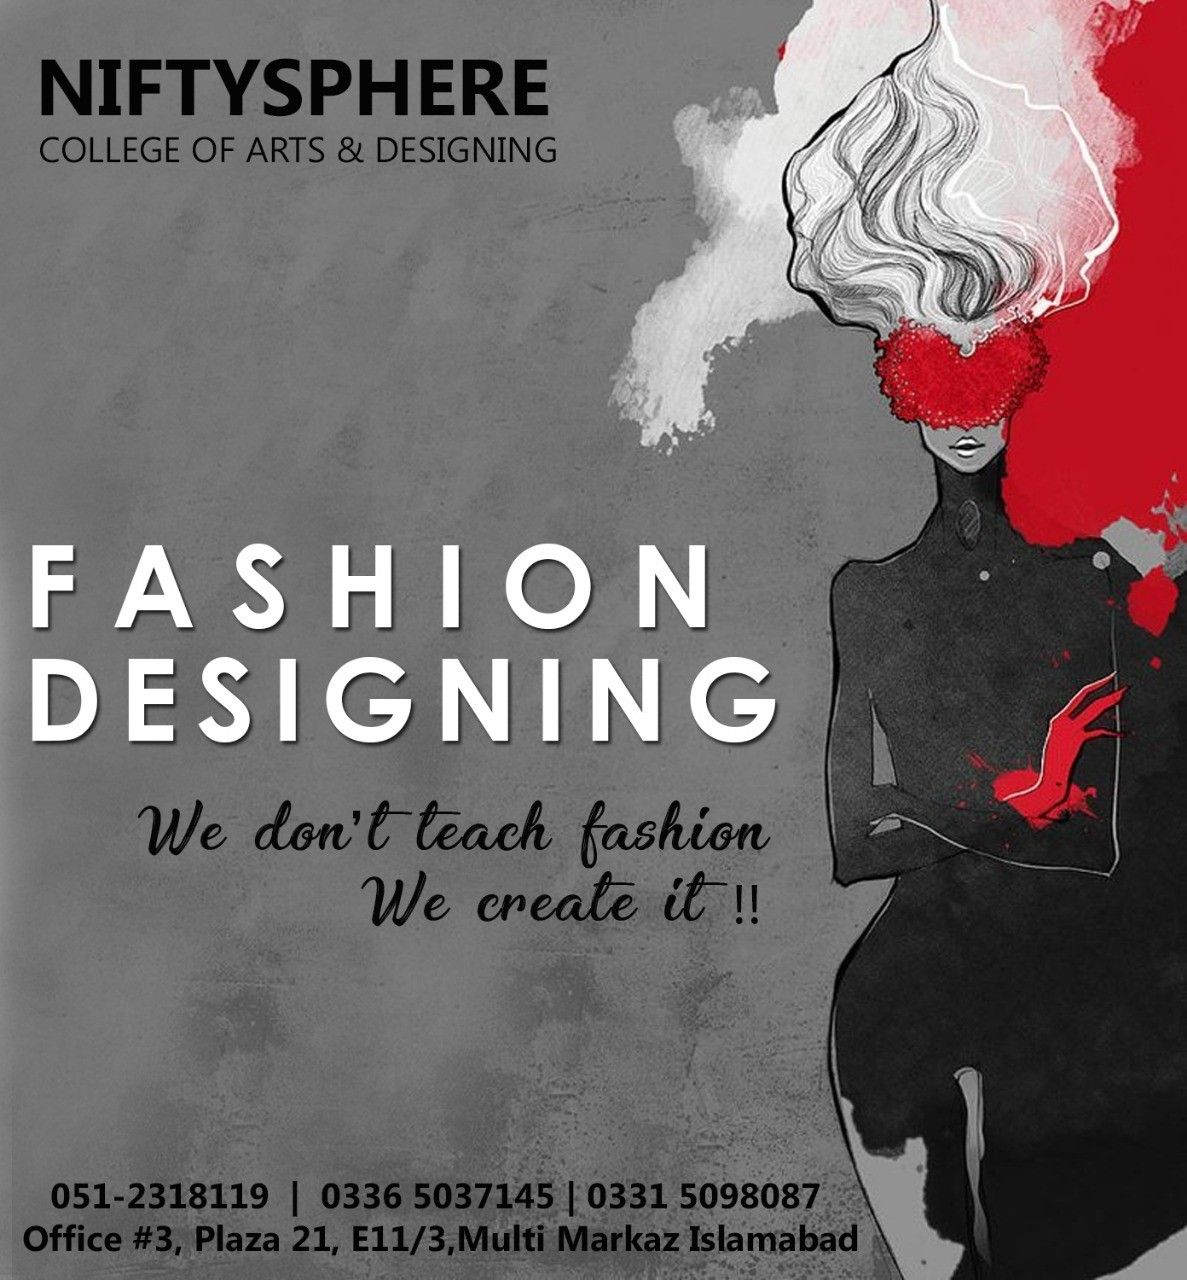 Pin By Niftysphere Institute Of Arts On Niftysphere College Courses College Art Art Design Teaching